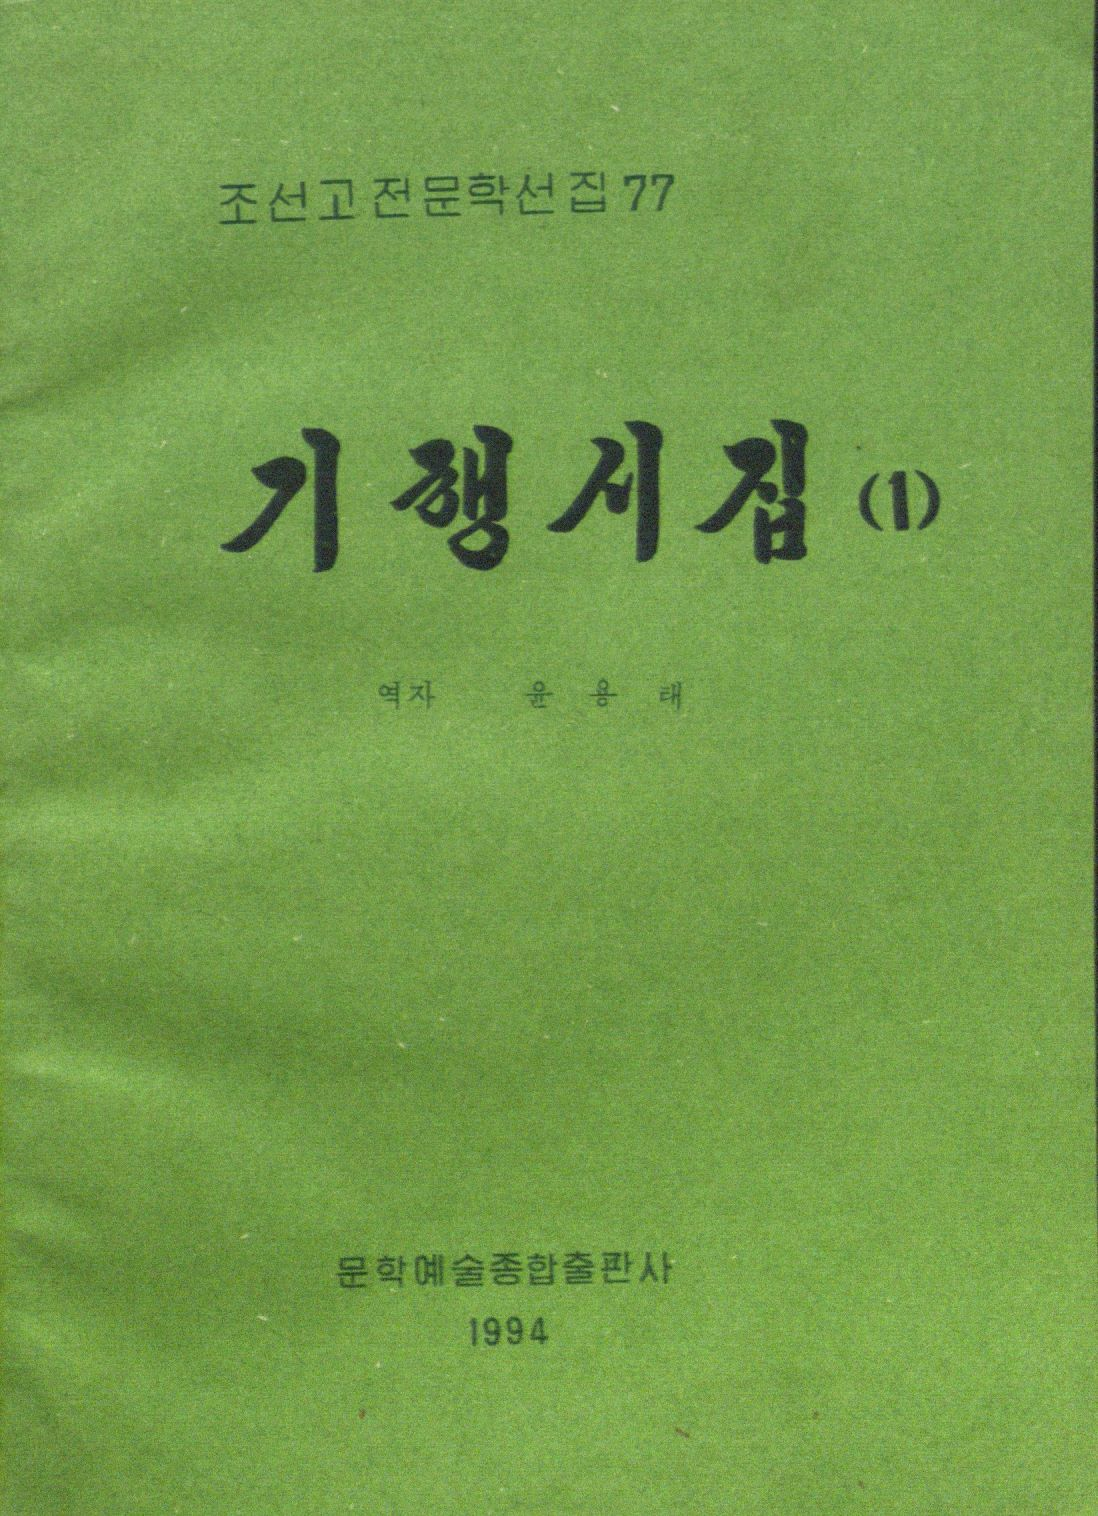 title page of 기행 시집 1